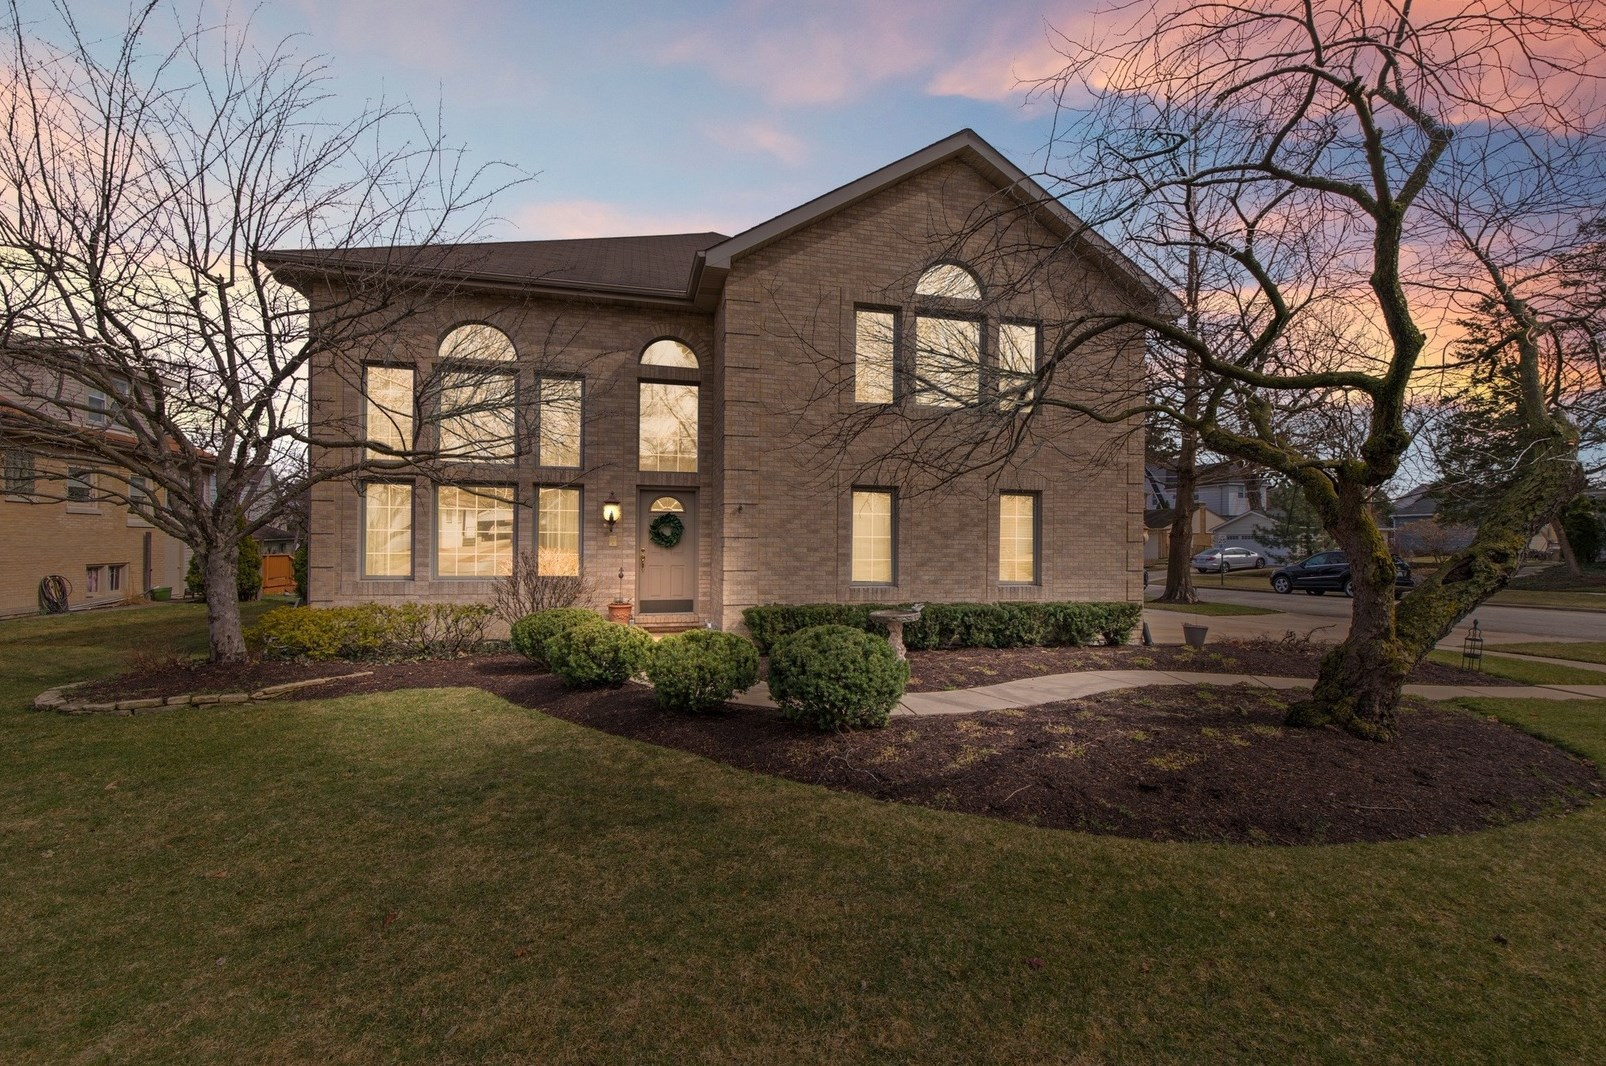 718 39th St, Western Springs, IL 60558